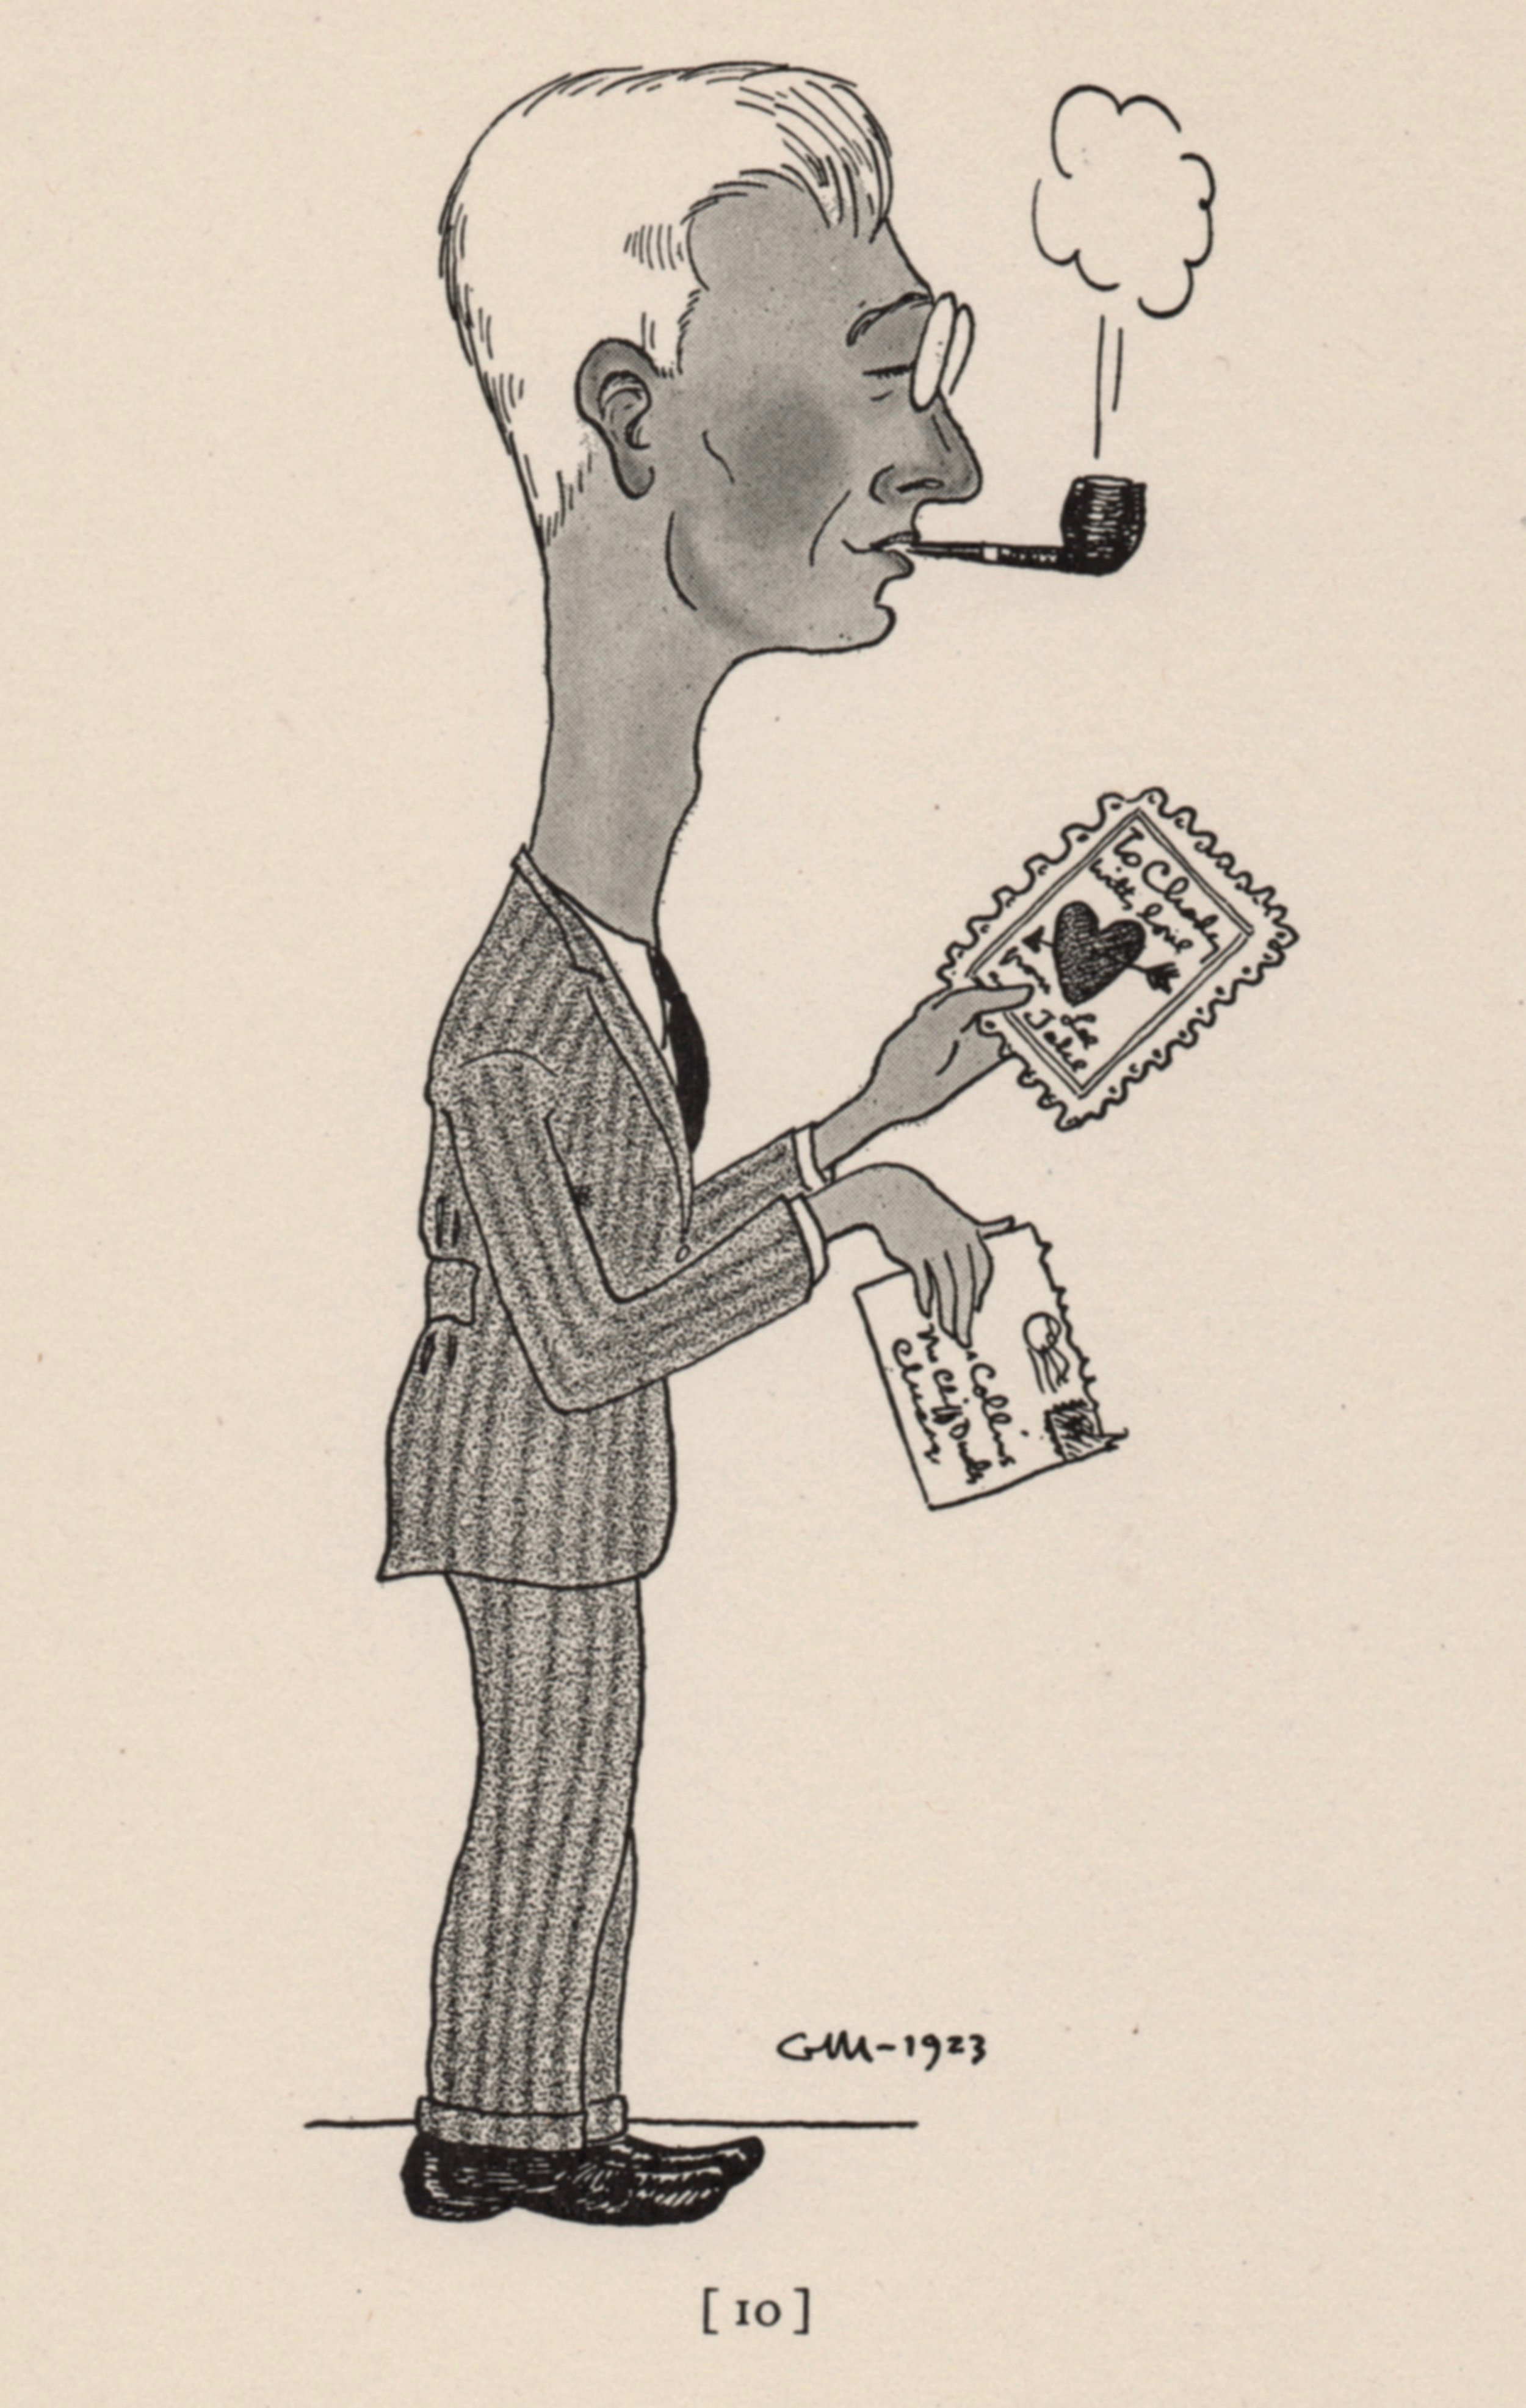 Cartoonist Gene Markey did this caricature of Charles Collins in 1923. He also  did a few of Starrett.  Image from  Men About Town: A Book of 58 Caricatures  by Gene Markey, published in 1934 by Covici-McGee Co.